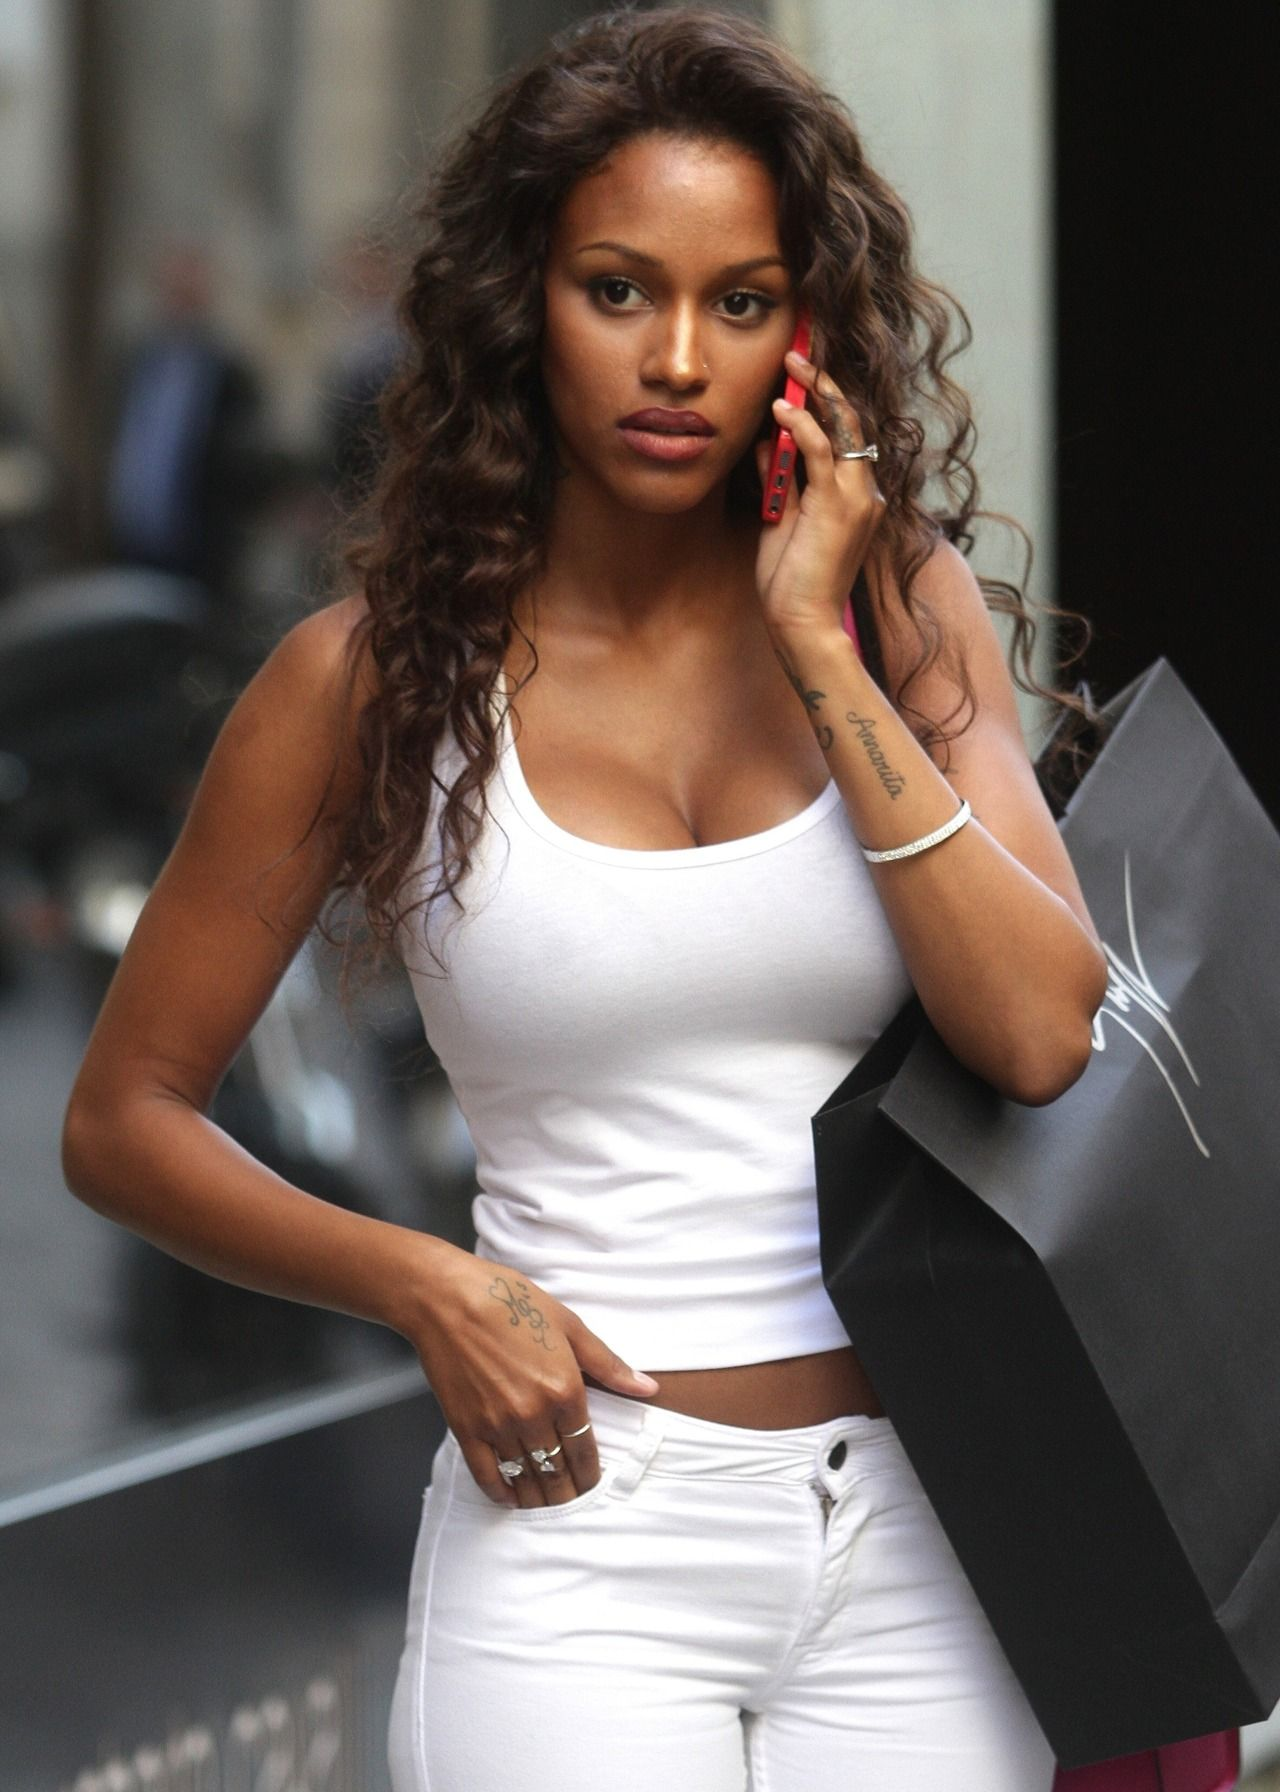 Cleavage Fanny Neguesha nude photos 2019